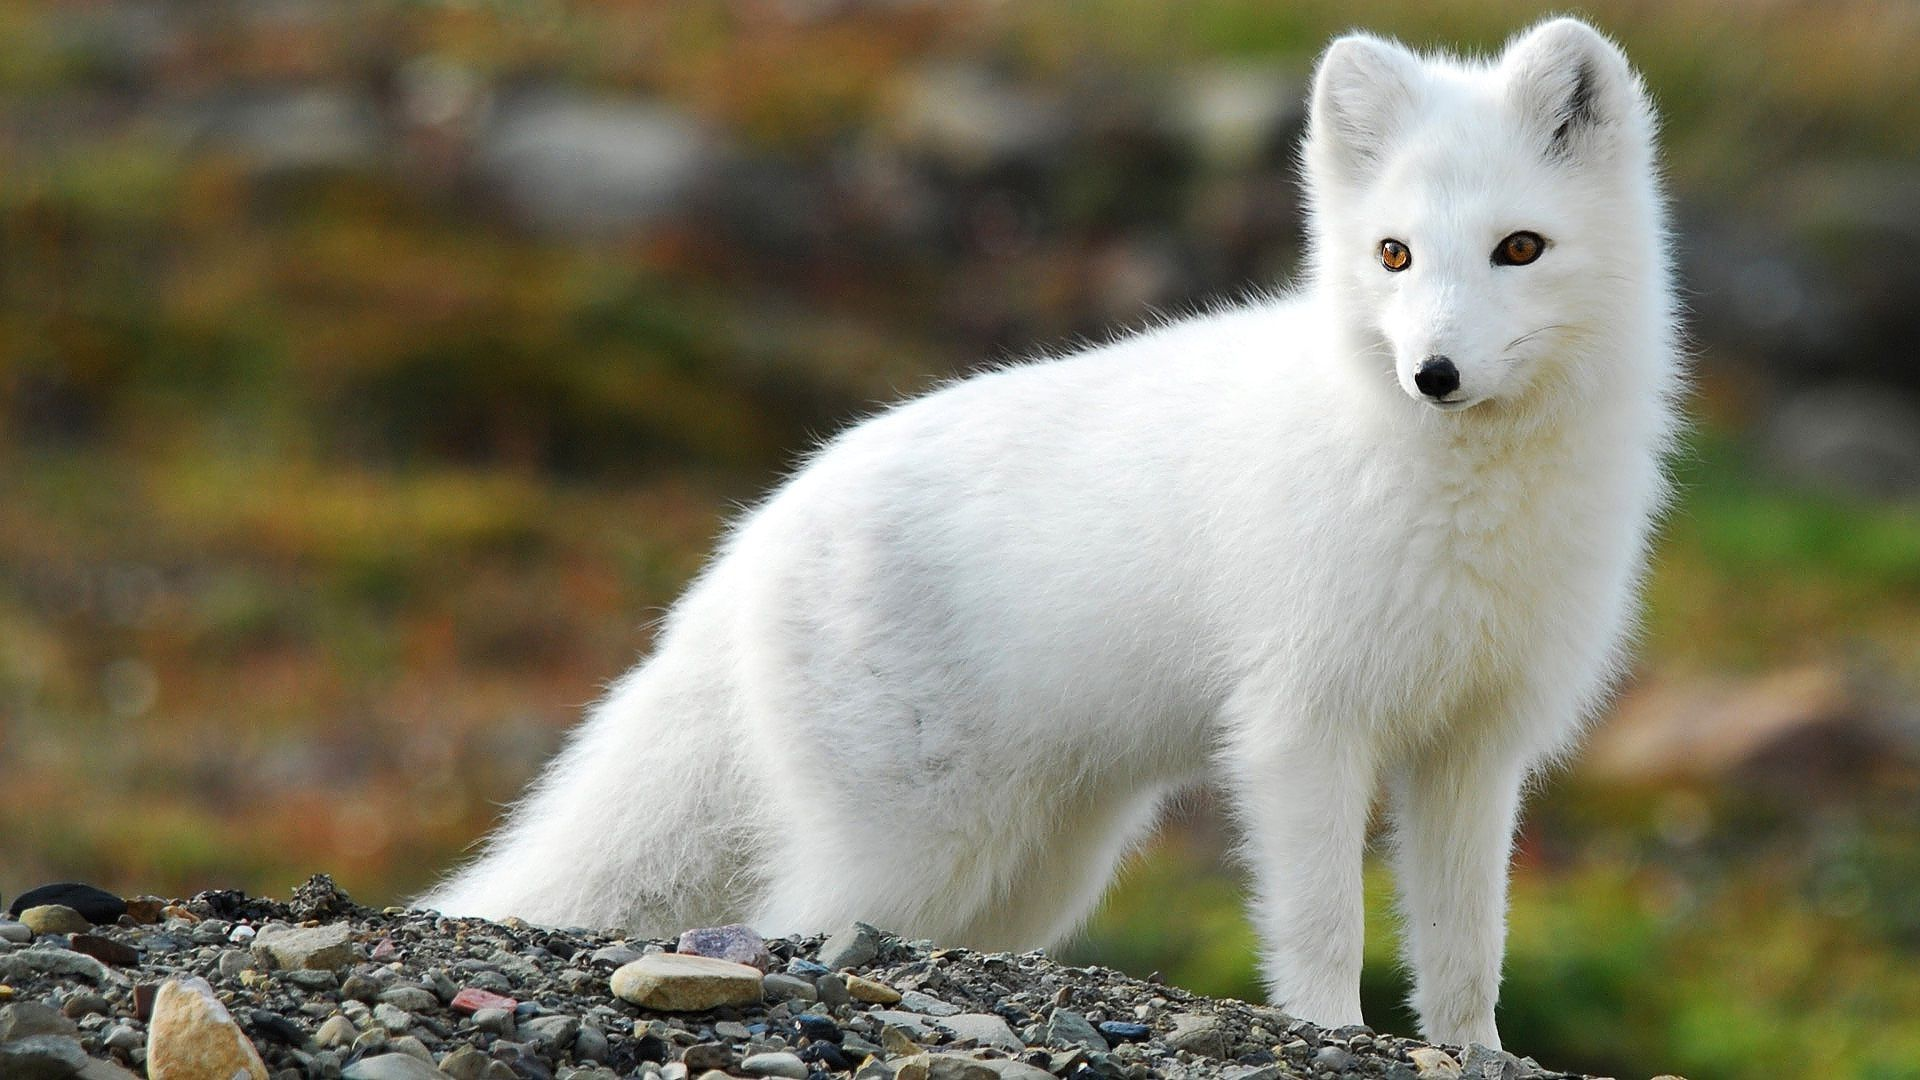 Arctic-Fox-HD-Backgrounds-wallpaper-wpc5802235